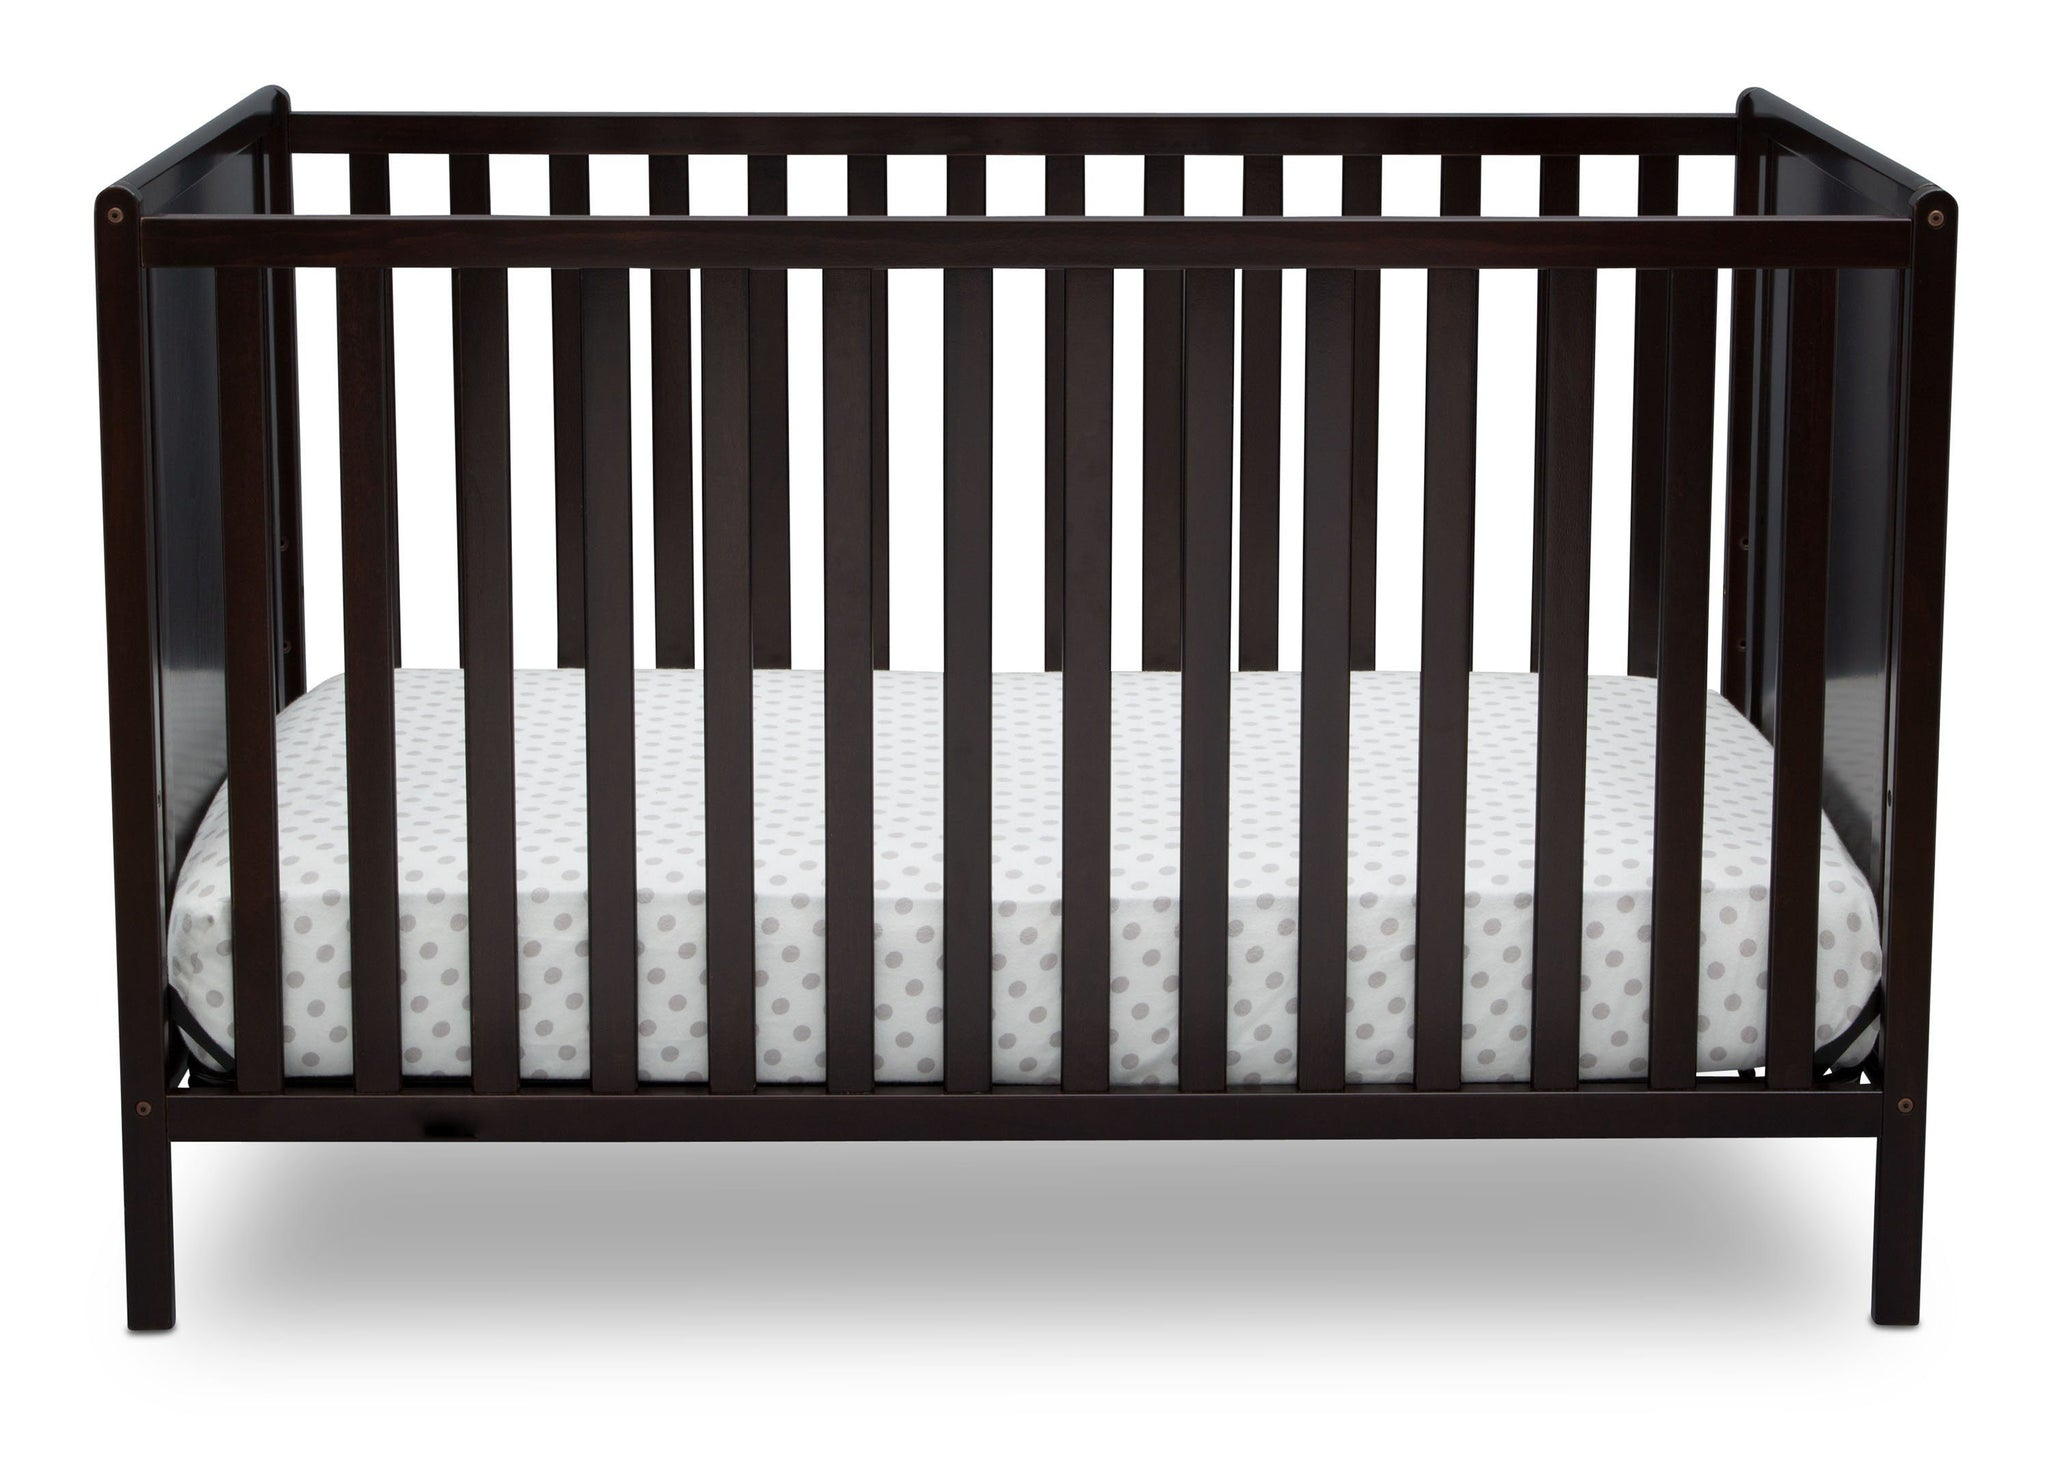 Delta Children Dark Chocolate (207) Heartland Classic 4-in-1 Convertible Crib, Crib Front, d2d